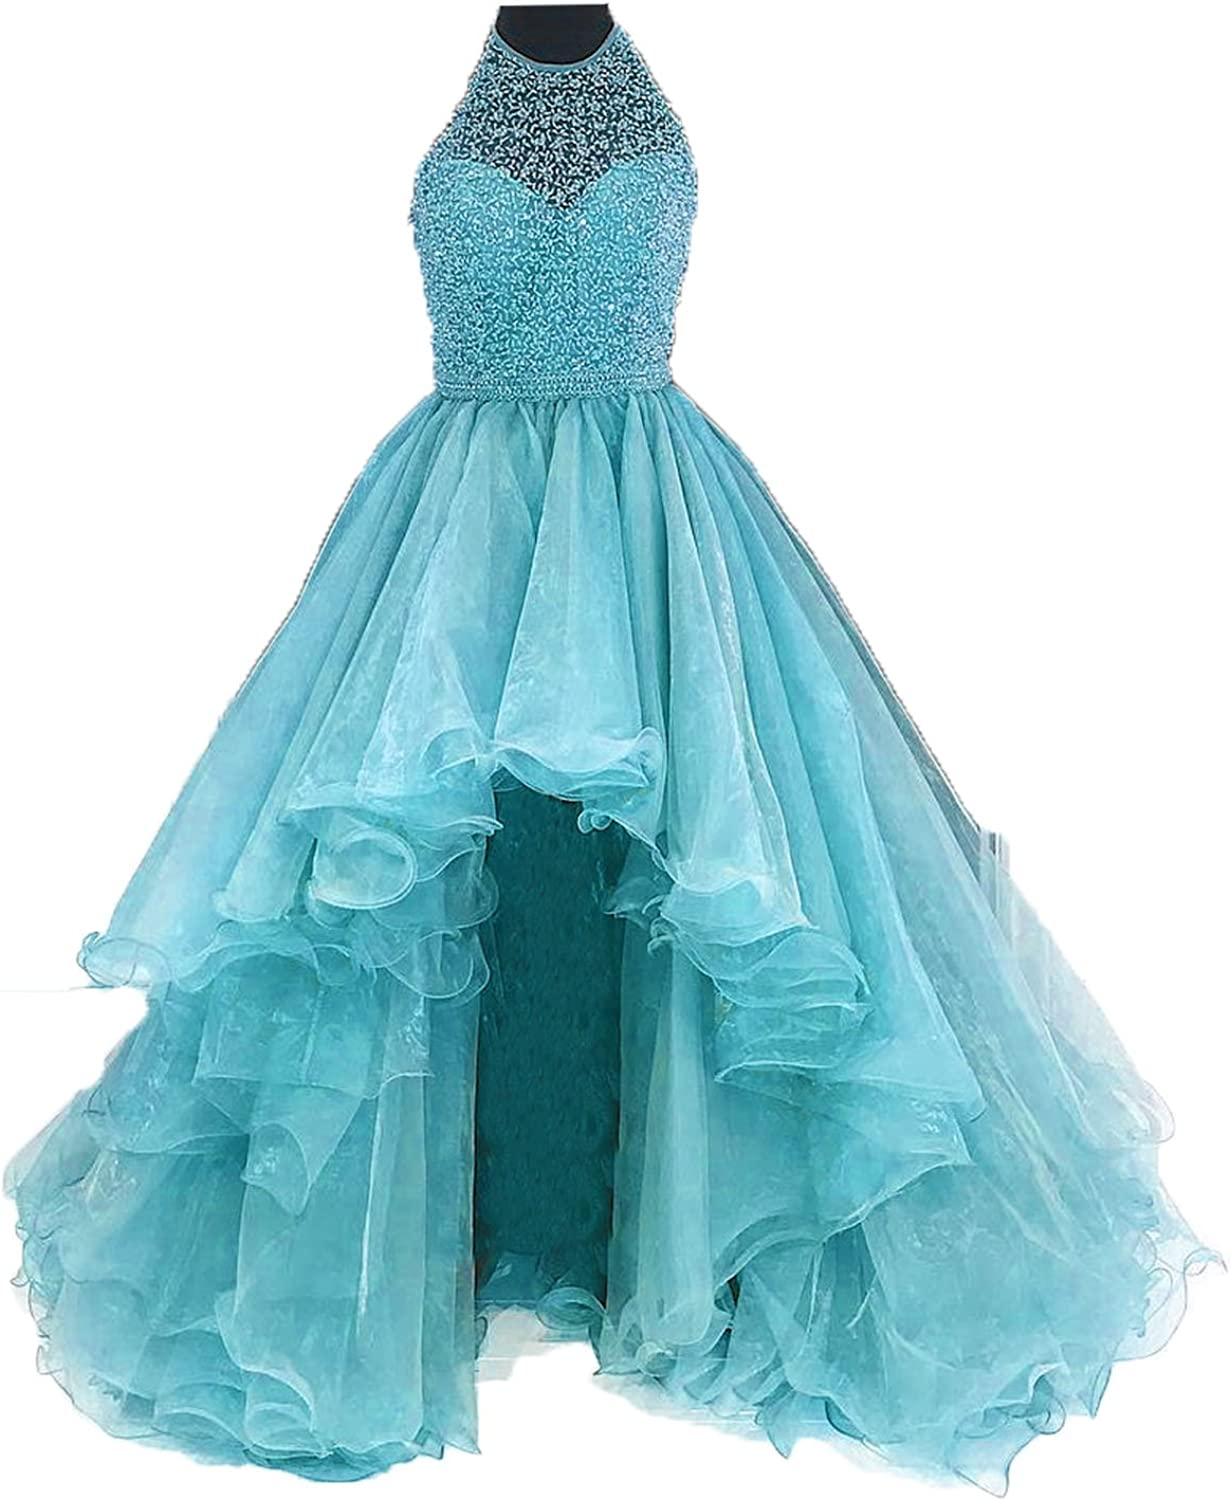 Siaoryne A Line Halter Beading Prom Dresses High Low for Juniors Corset Back bluee 18W